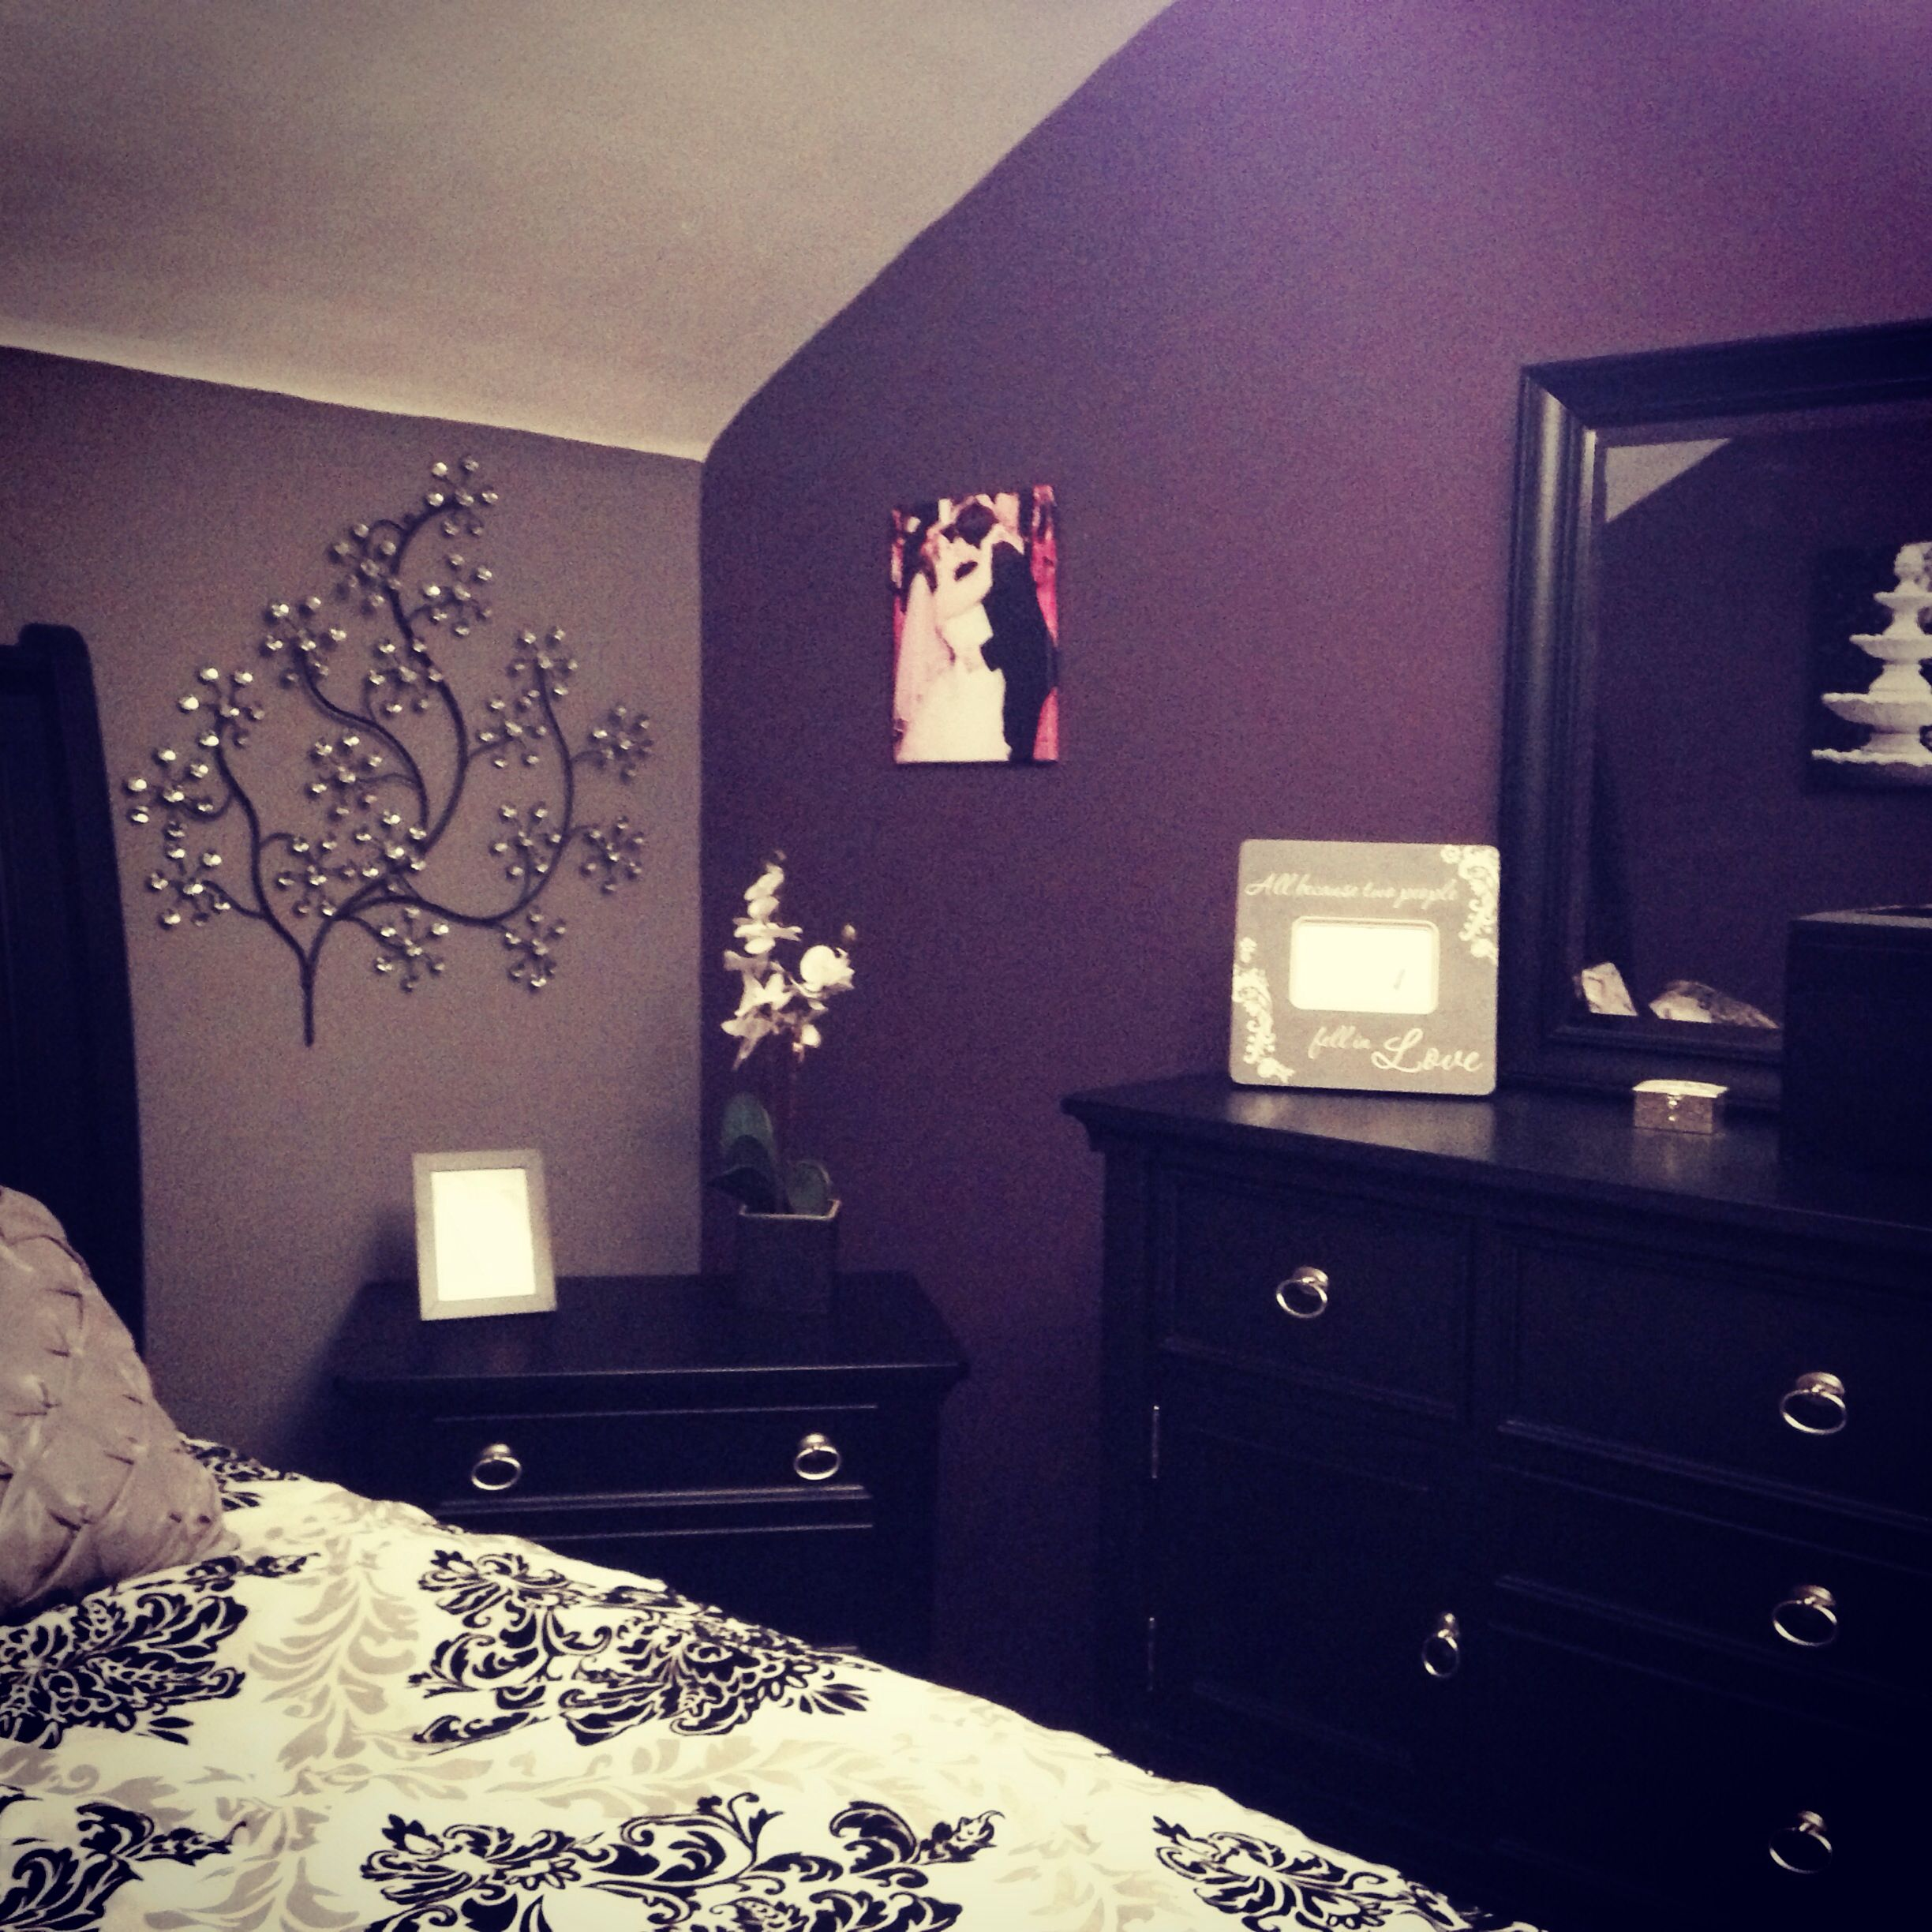 Painted Walls Colorful Room Design: My Purple And Grey Bedroom